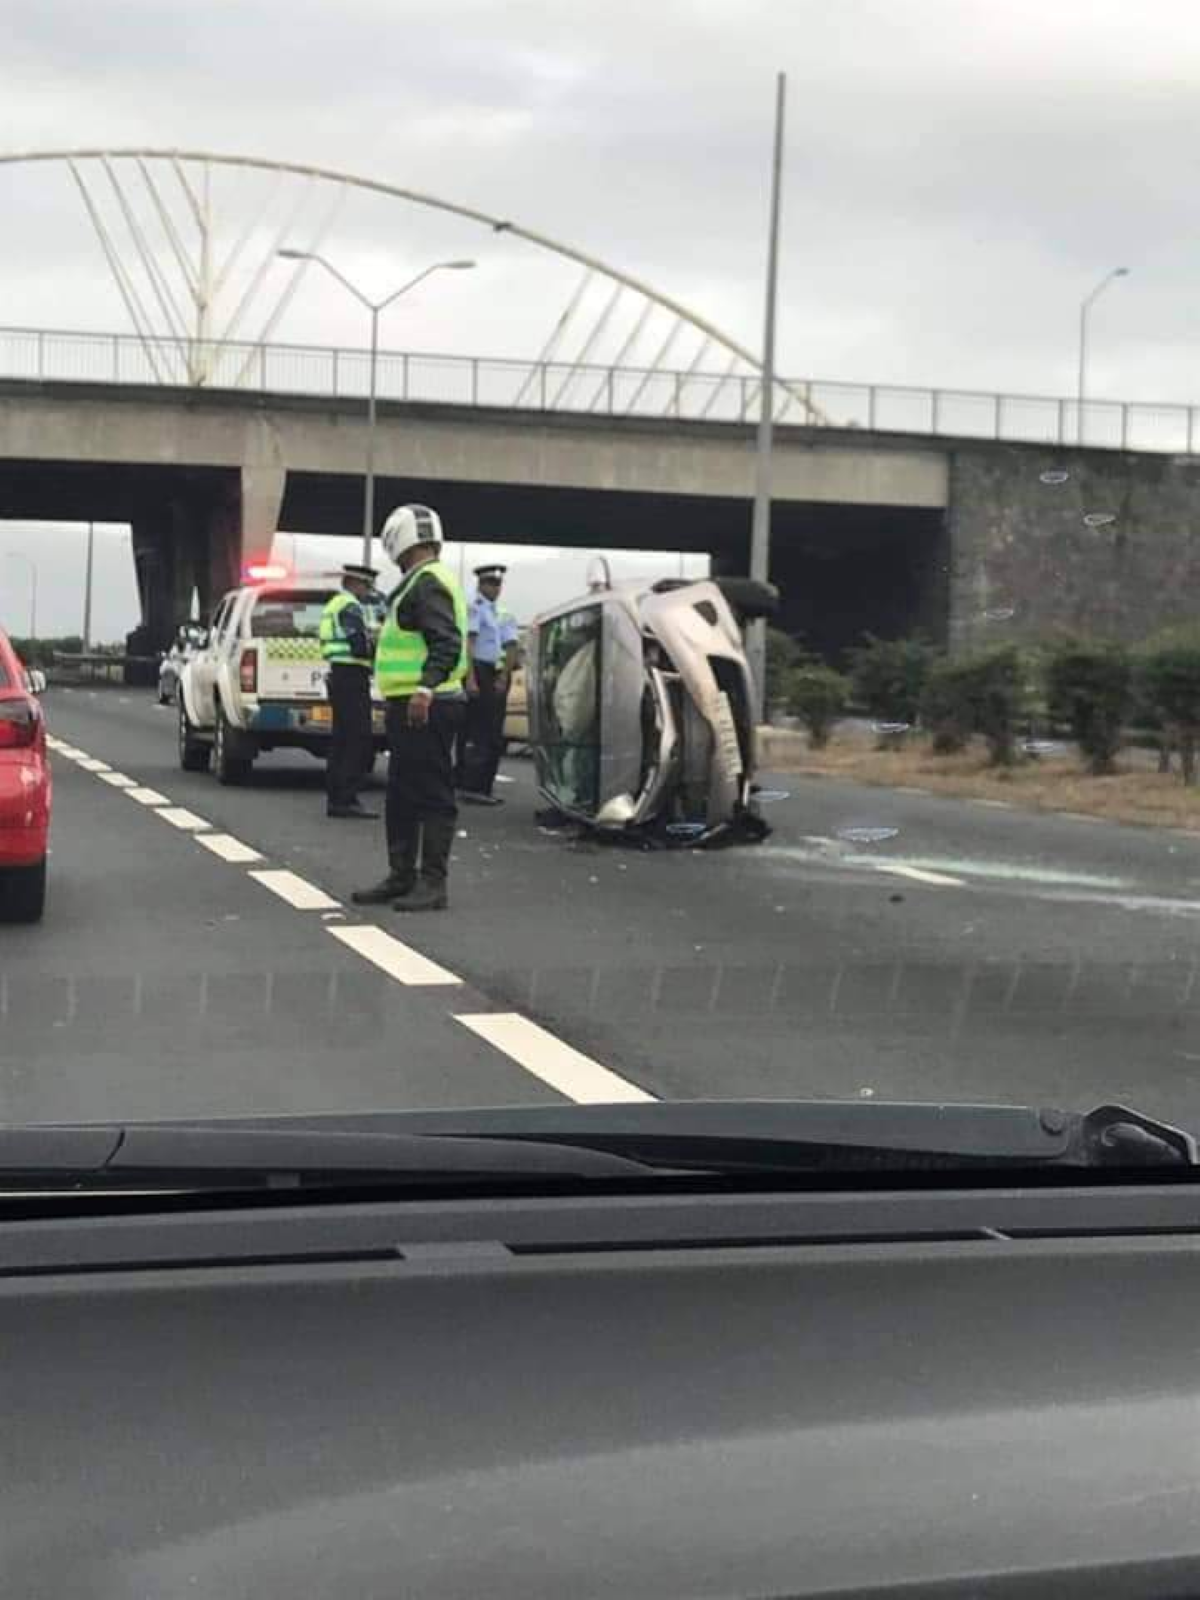 Accident à Bagatelle, la circulation fortement perturbée en direction de Port-Louis